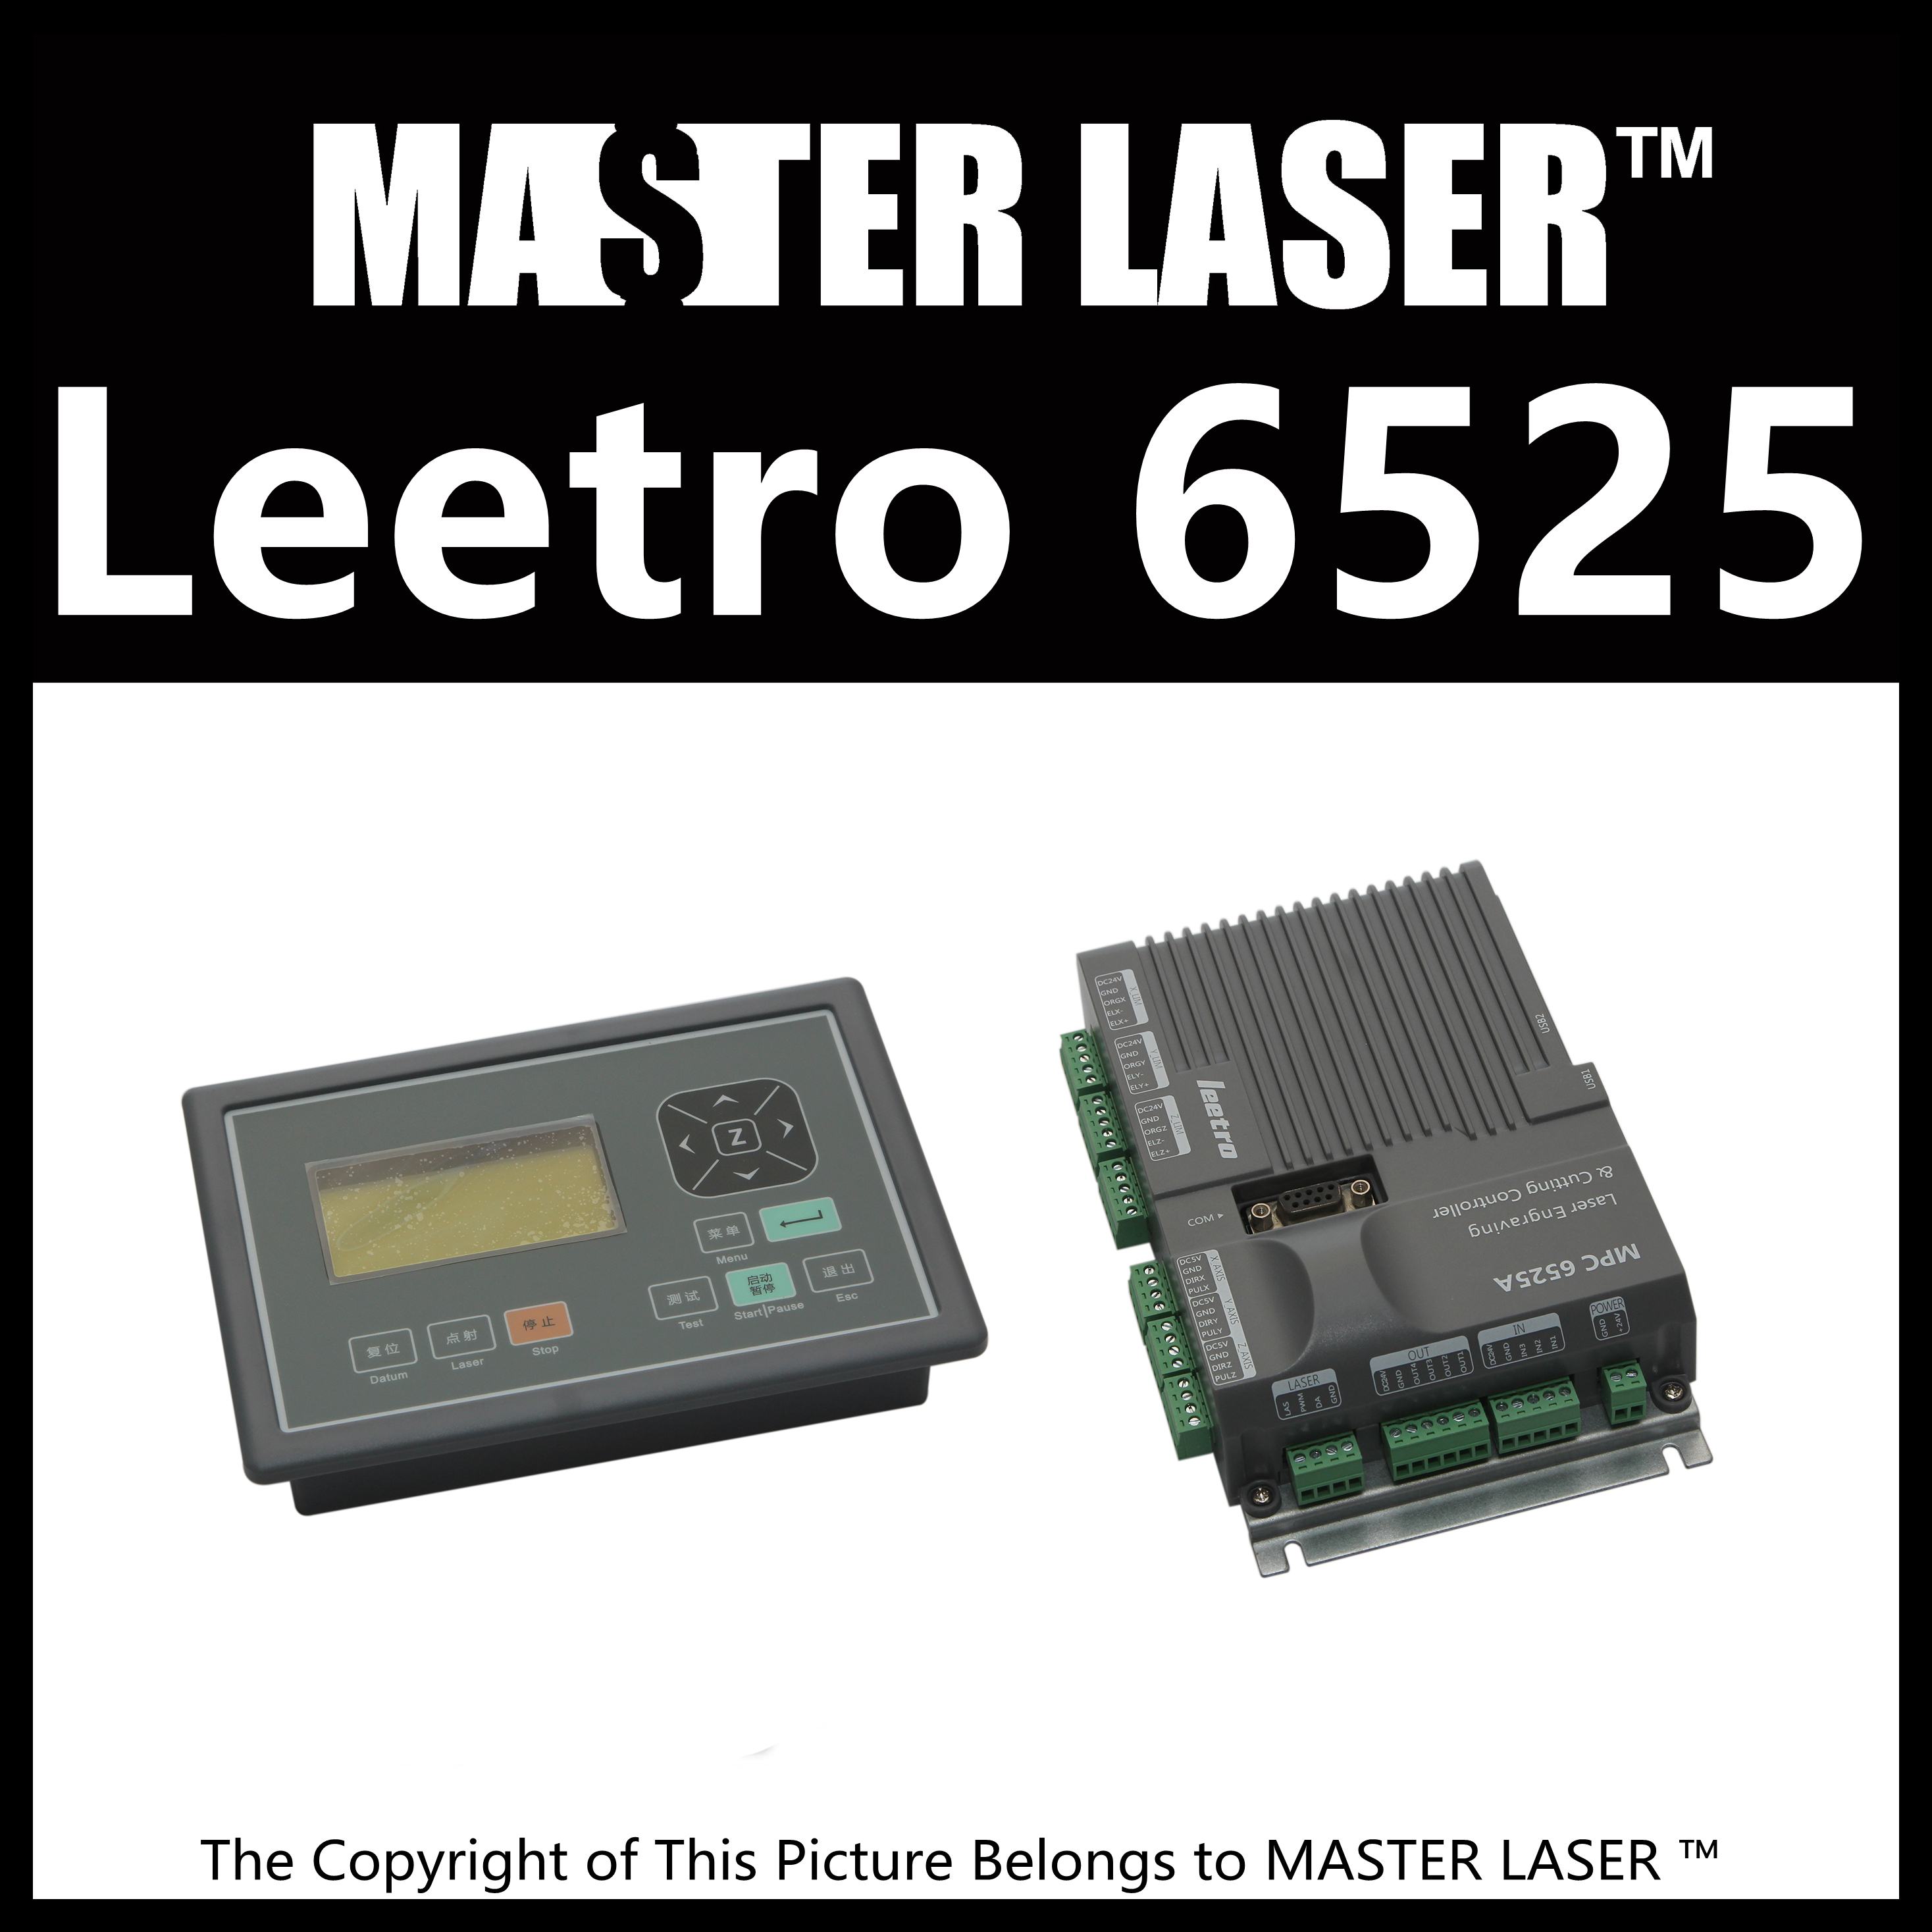 Economic leetro mpc 6525A 6535  Motion Controller for CO2 Laser Cutting Machine Upgrade of 6515 erin muschla berry teaching the common core math standards with hands on activities grades 3 5